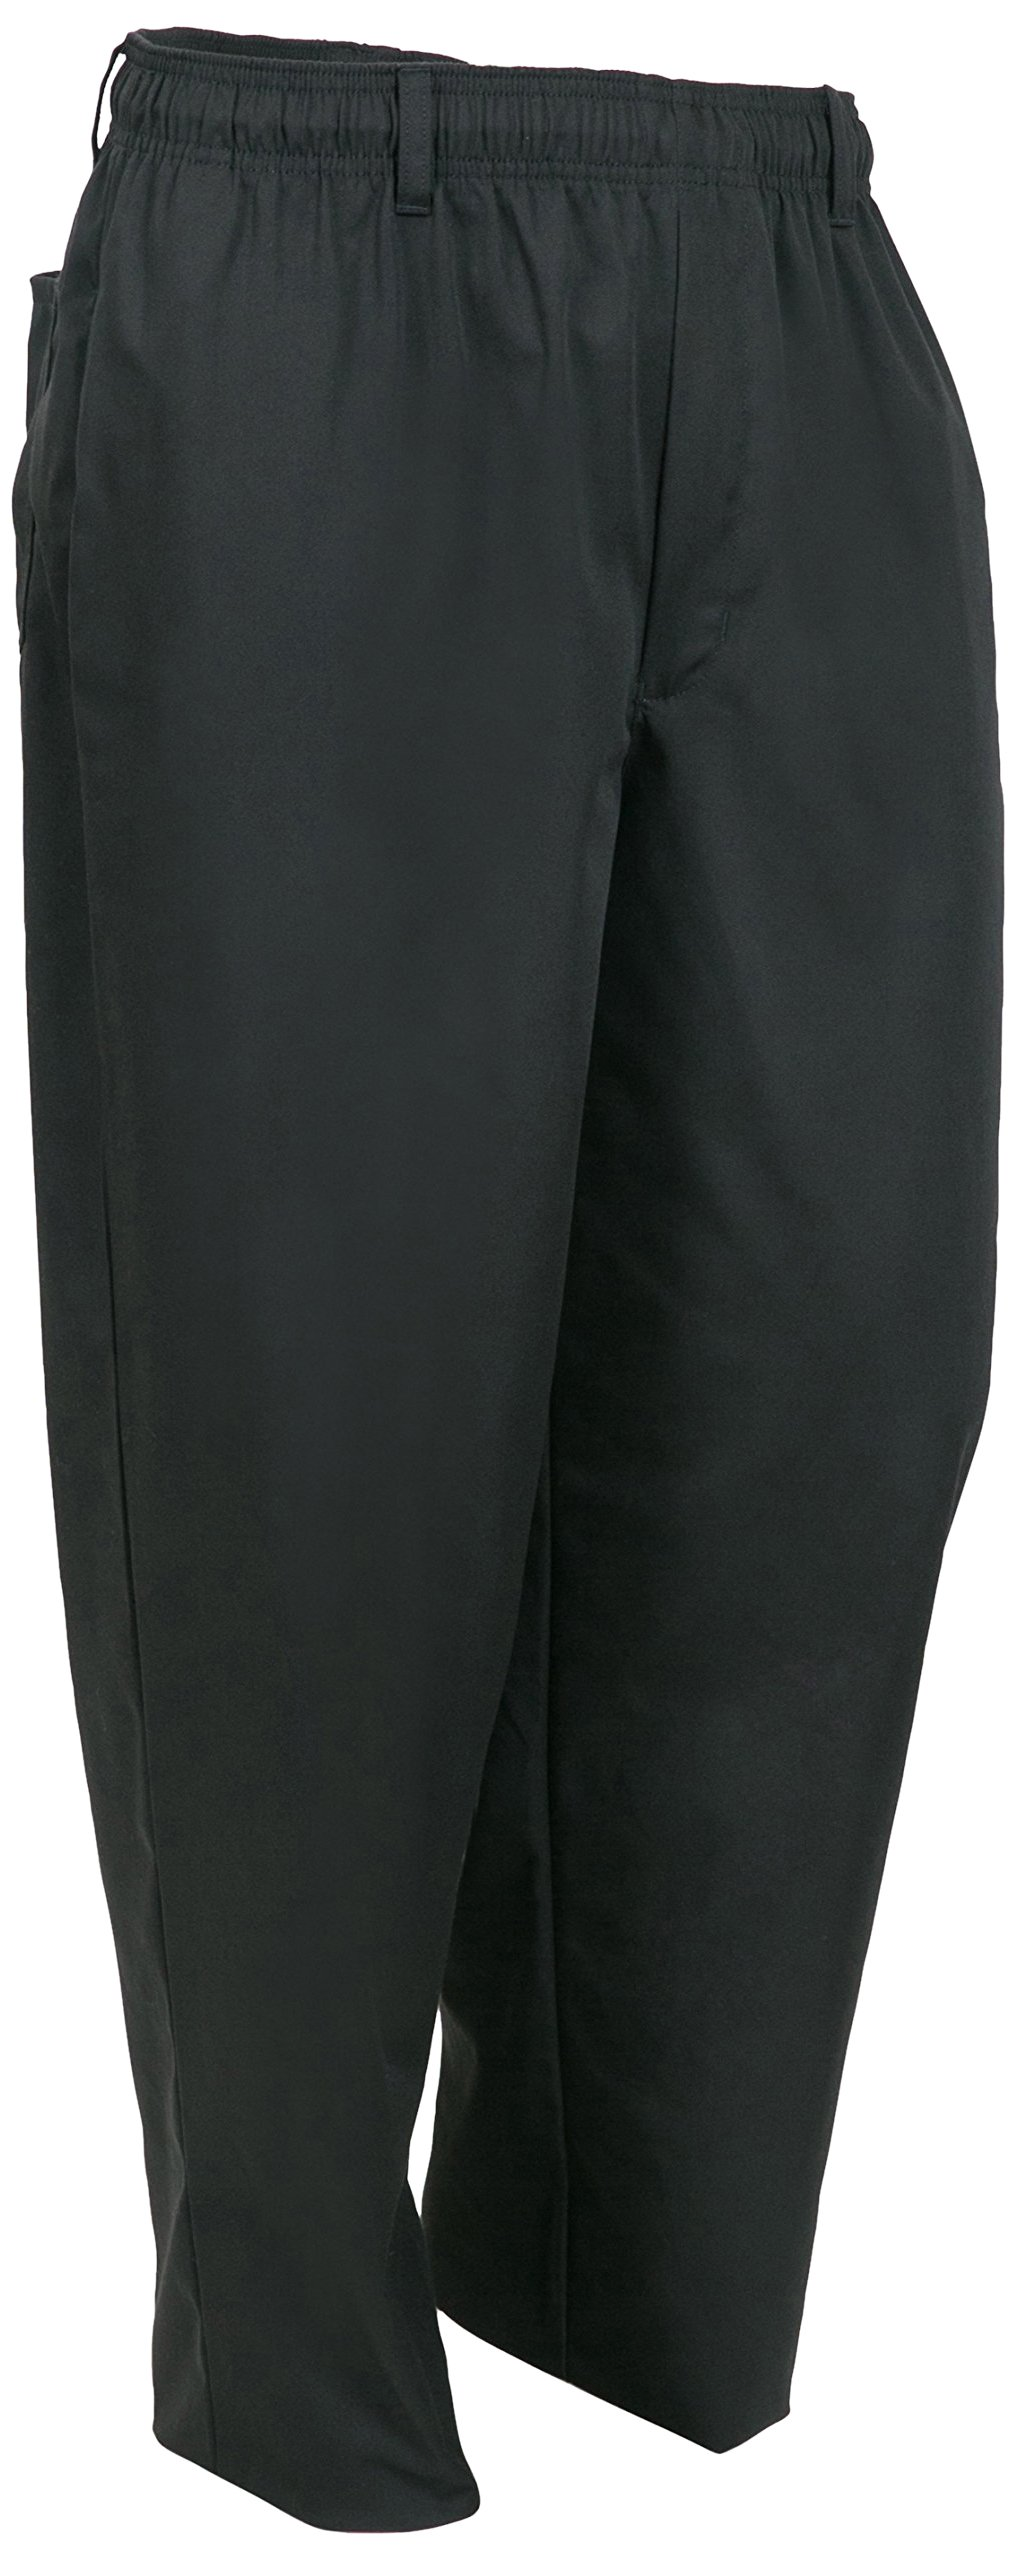 Mercer Culinary M60050BK7X Millennia Men's Cook's Pants, 7X-Large, Black by Mercer Culinary